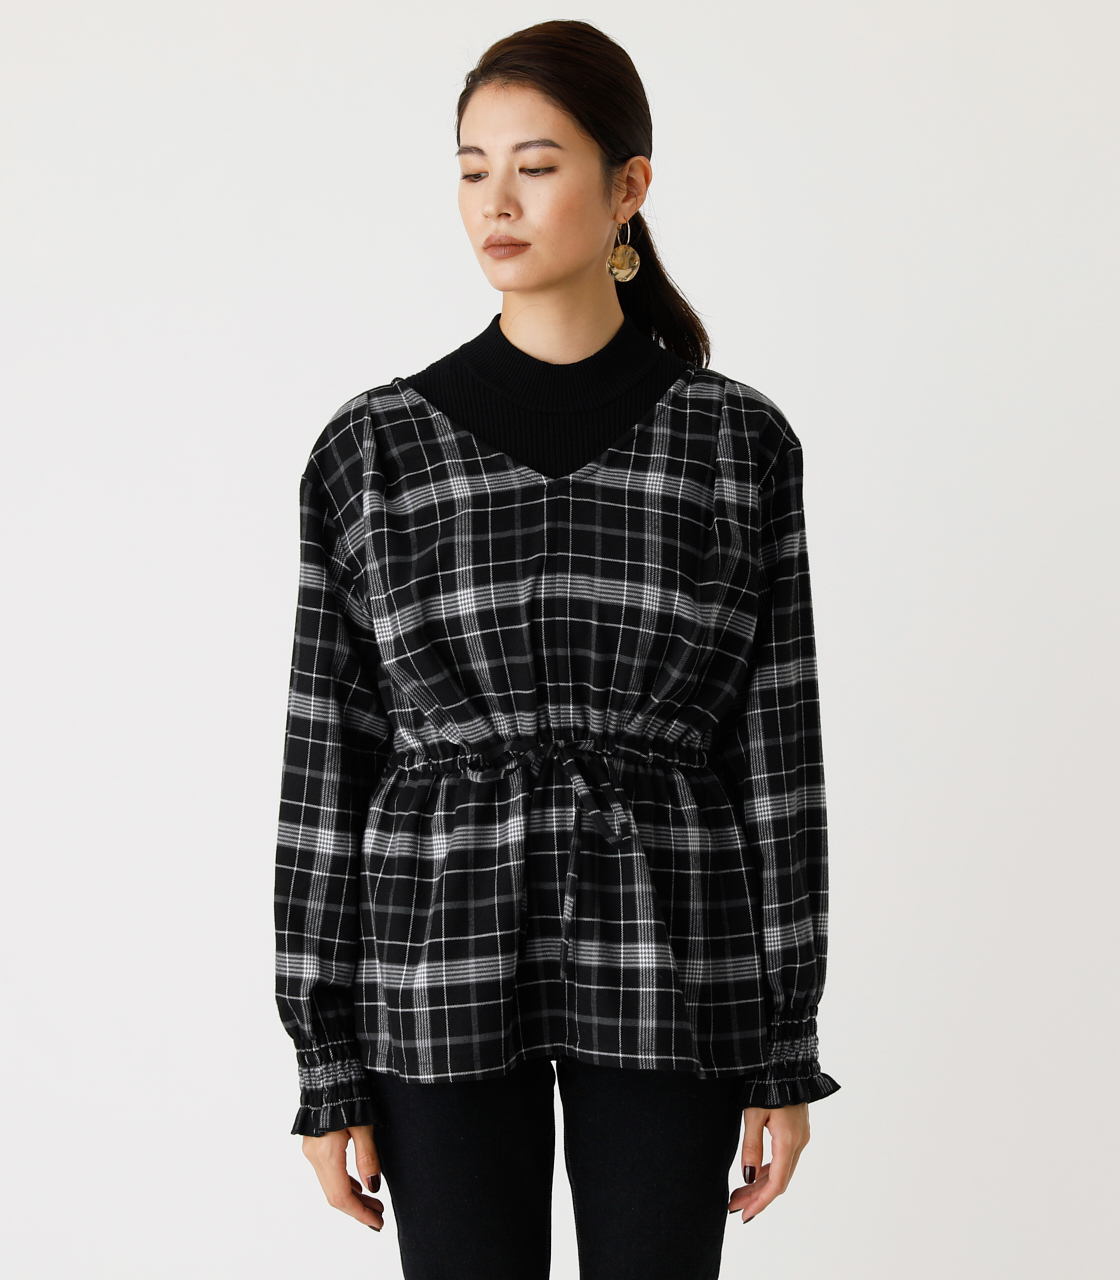 PEPLUM CHECK BLOUSE/ペプラムチェックブラウス 詳細画像 柄BLK 4